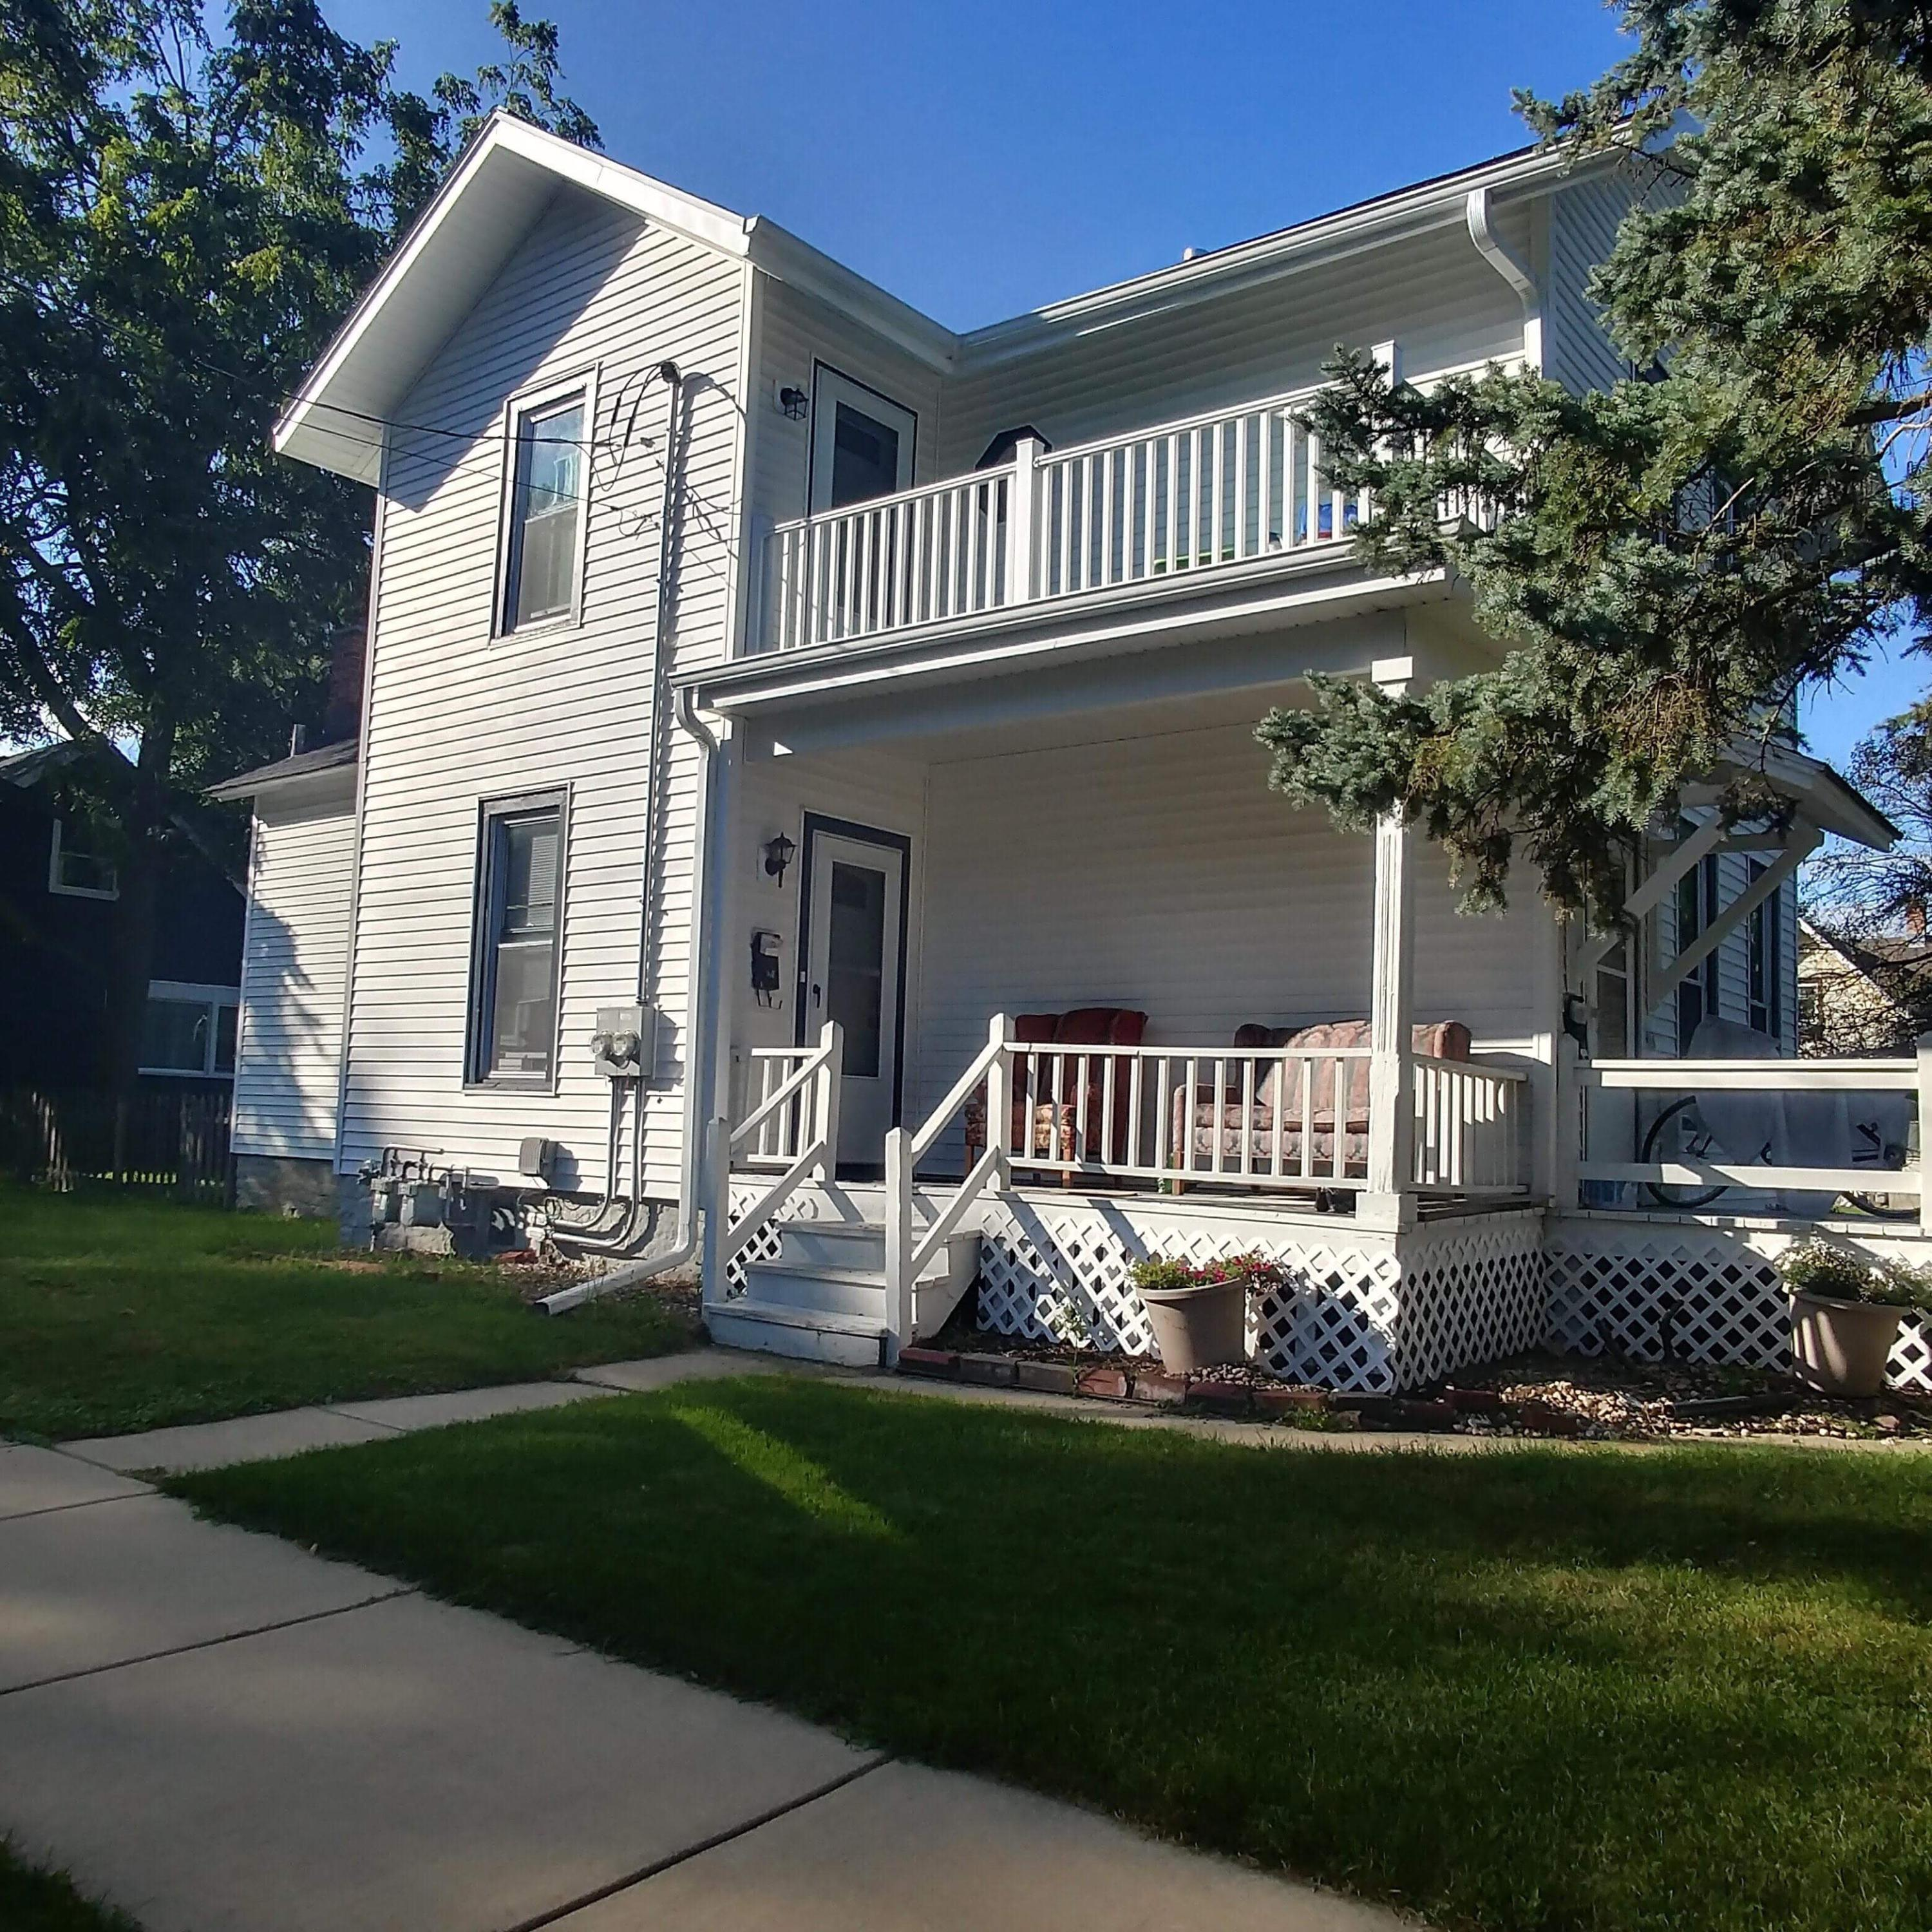 64 Maple St, Oconomowoc, Wisconsin 53066, 2 Bedrooms Bedrooms, 5 Rooms Rooms,1 BathroomBathrooms,Two-Family,For Sale,Maple St,1,1616418